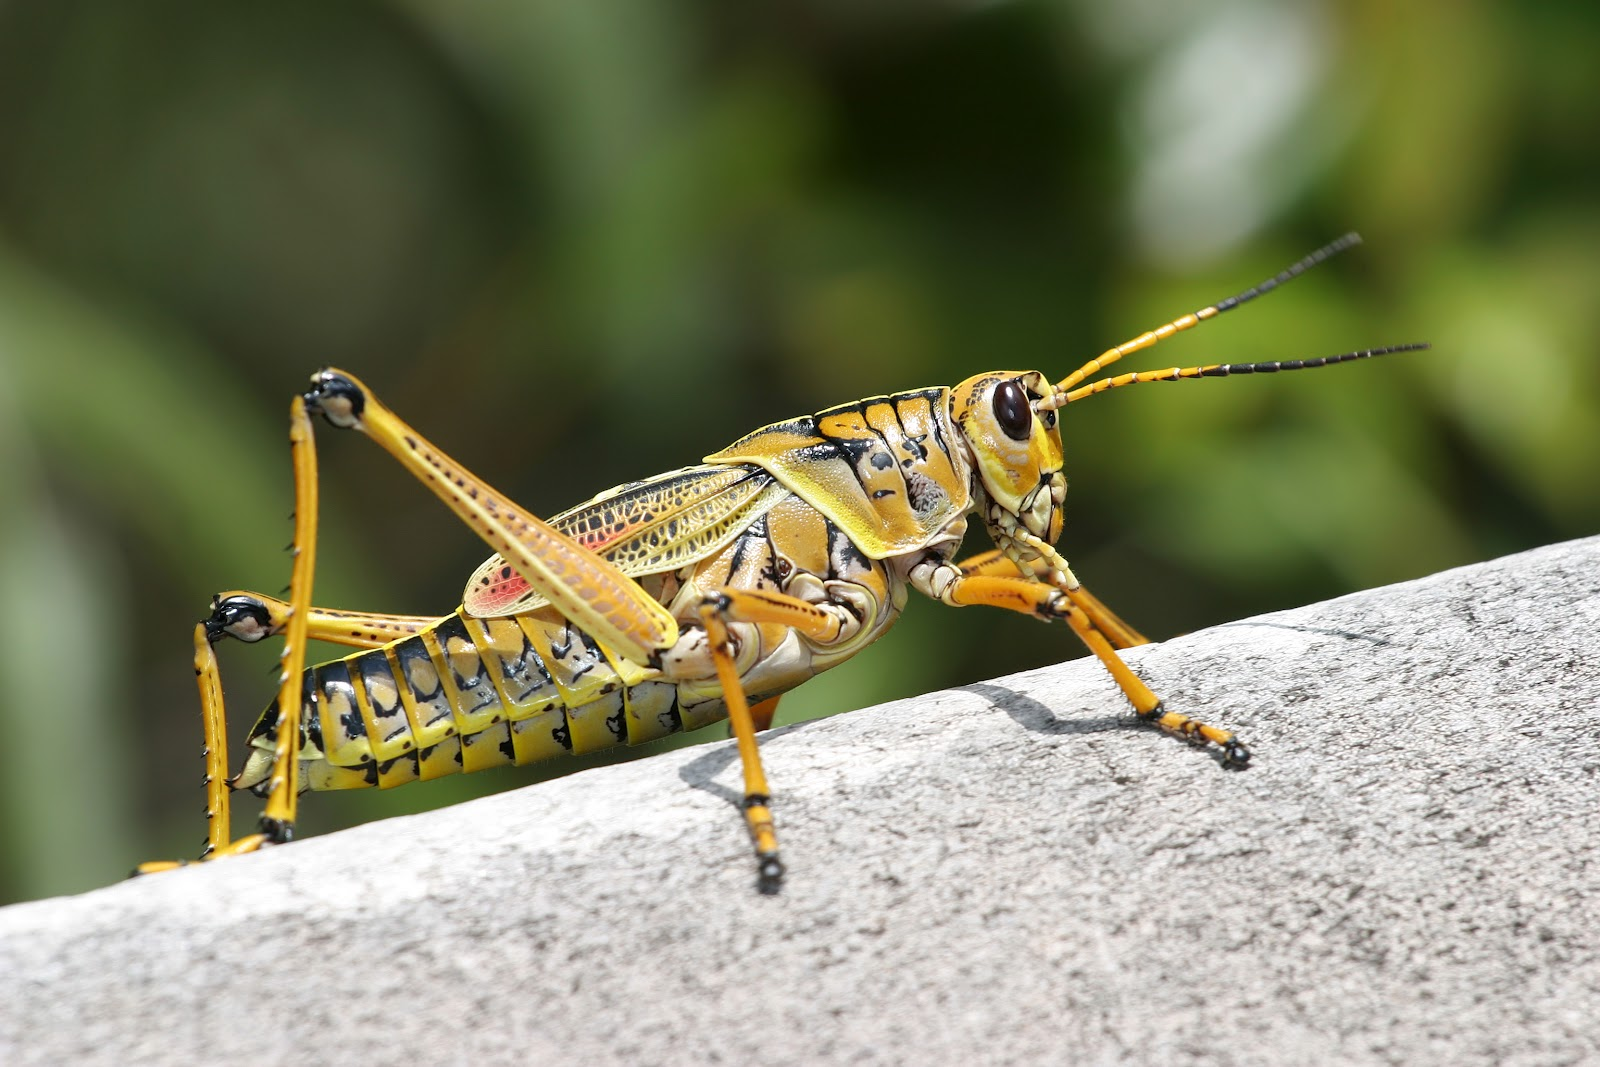 Grasshopper | The Biggest Animals Kingdom